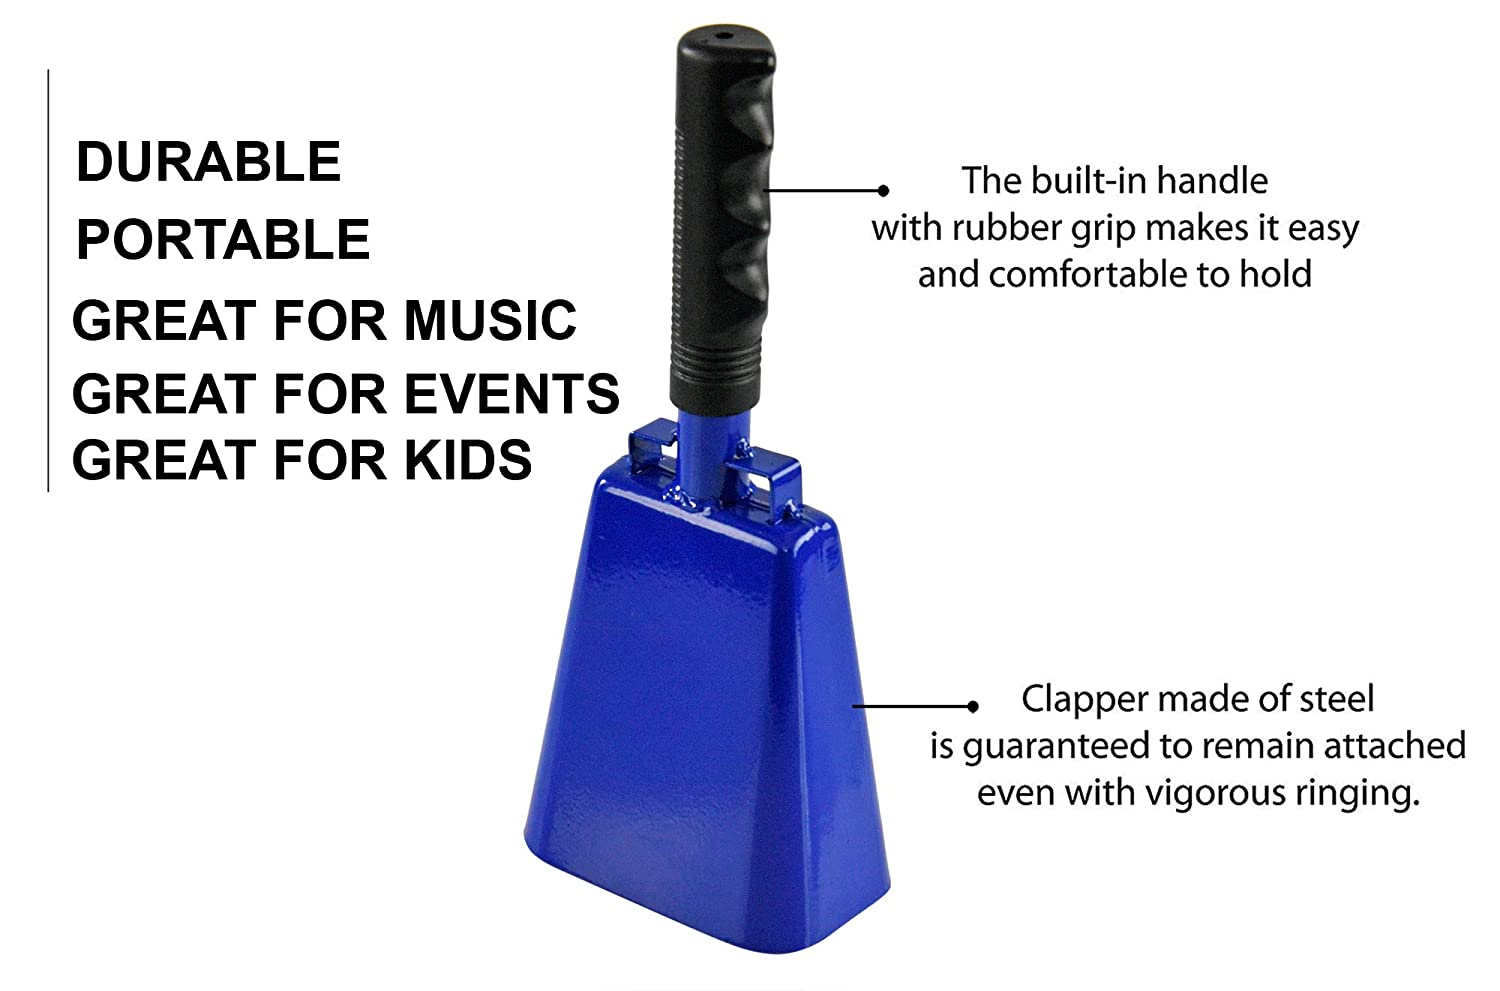 """Sporting Event Bell Blue Cheering 10/"""" L x 4 /¼/"""" W 2 /½/"""" H HOME-X Large 10/"""" Iron Cowbell with Sturdy Handle"""